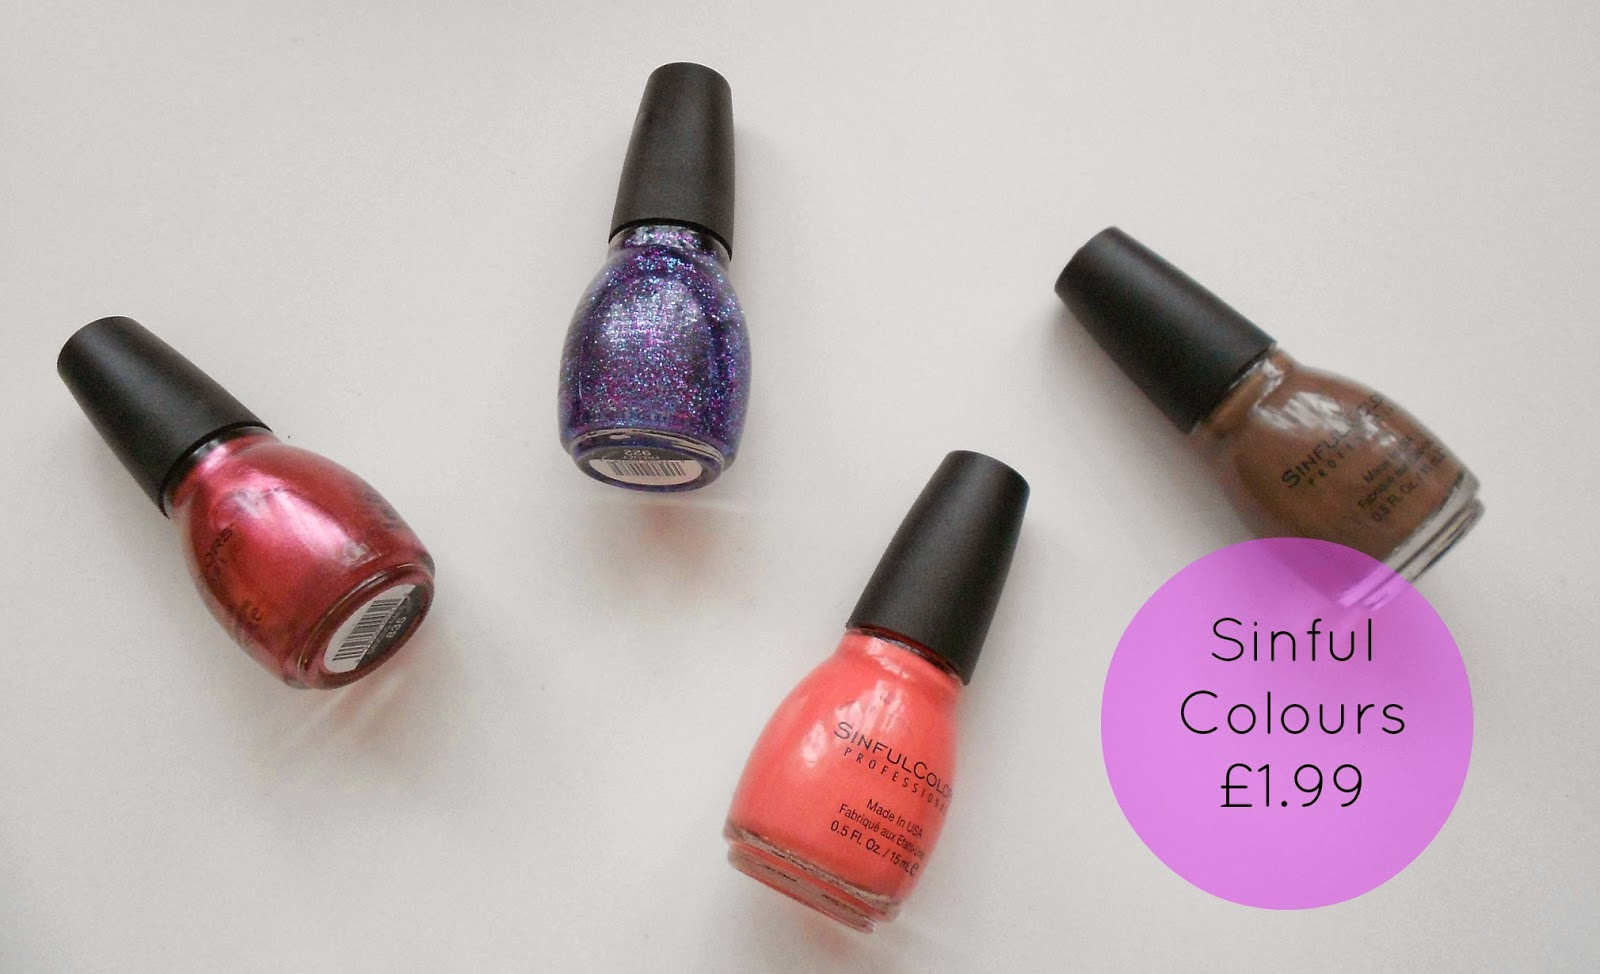 sinful colours nail polish uk dancing nails island coral nirvana frenzy